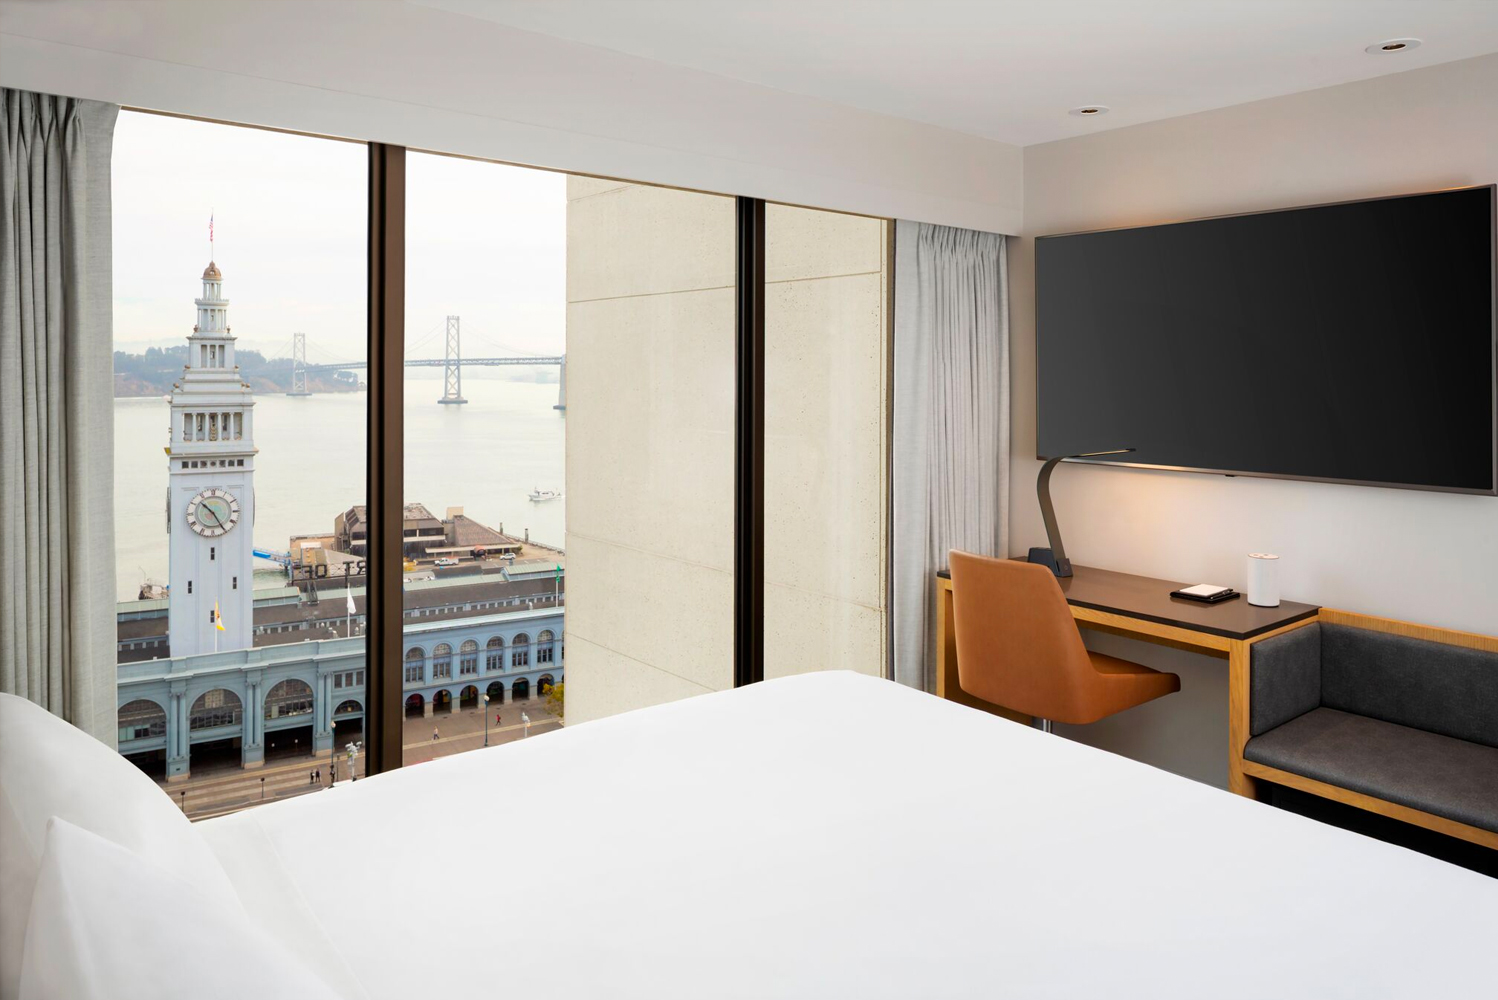 Designed by Looney & Associates, these new guestrooms have panoramic views of the San Francisco – Oakland Bay Bridge, historic Ferry Building and Treasure Island.